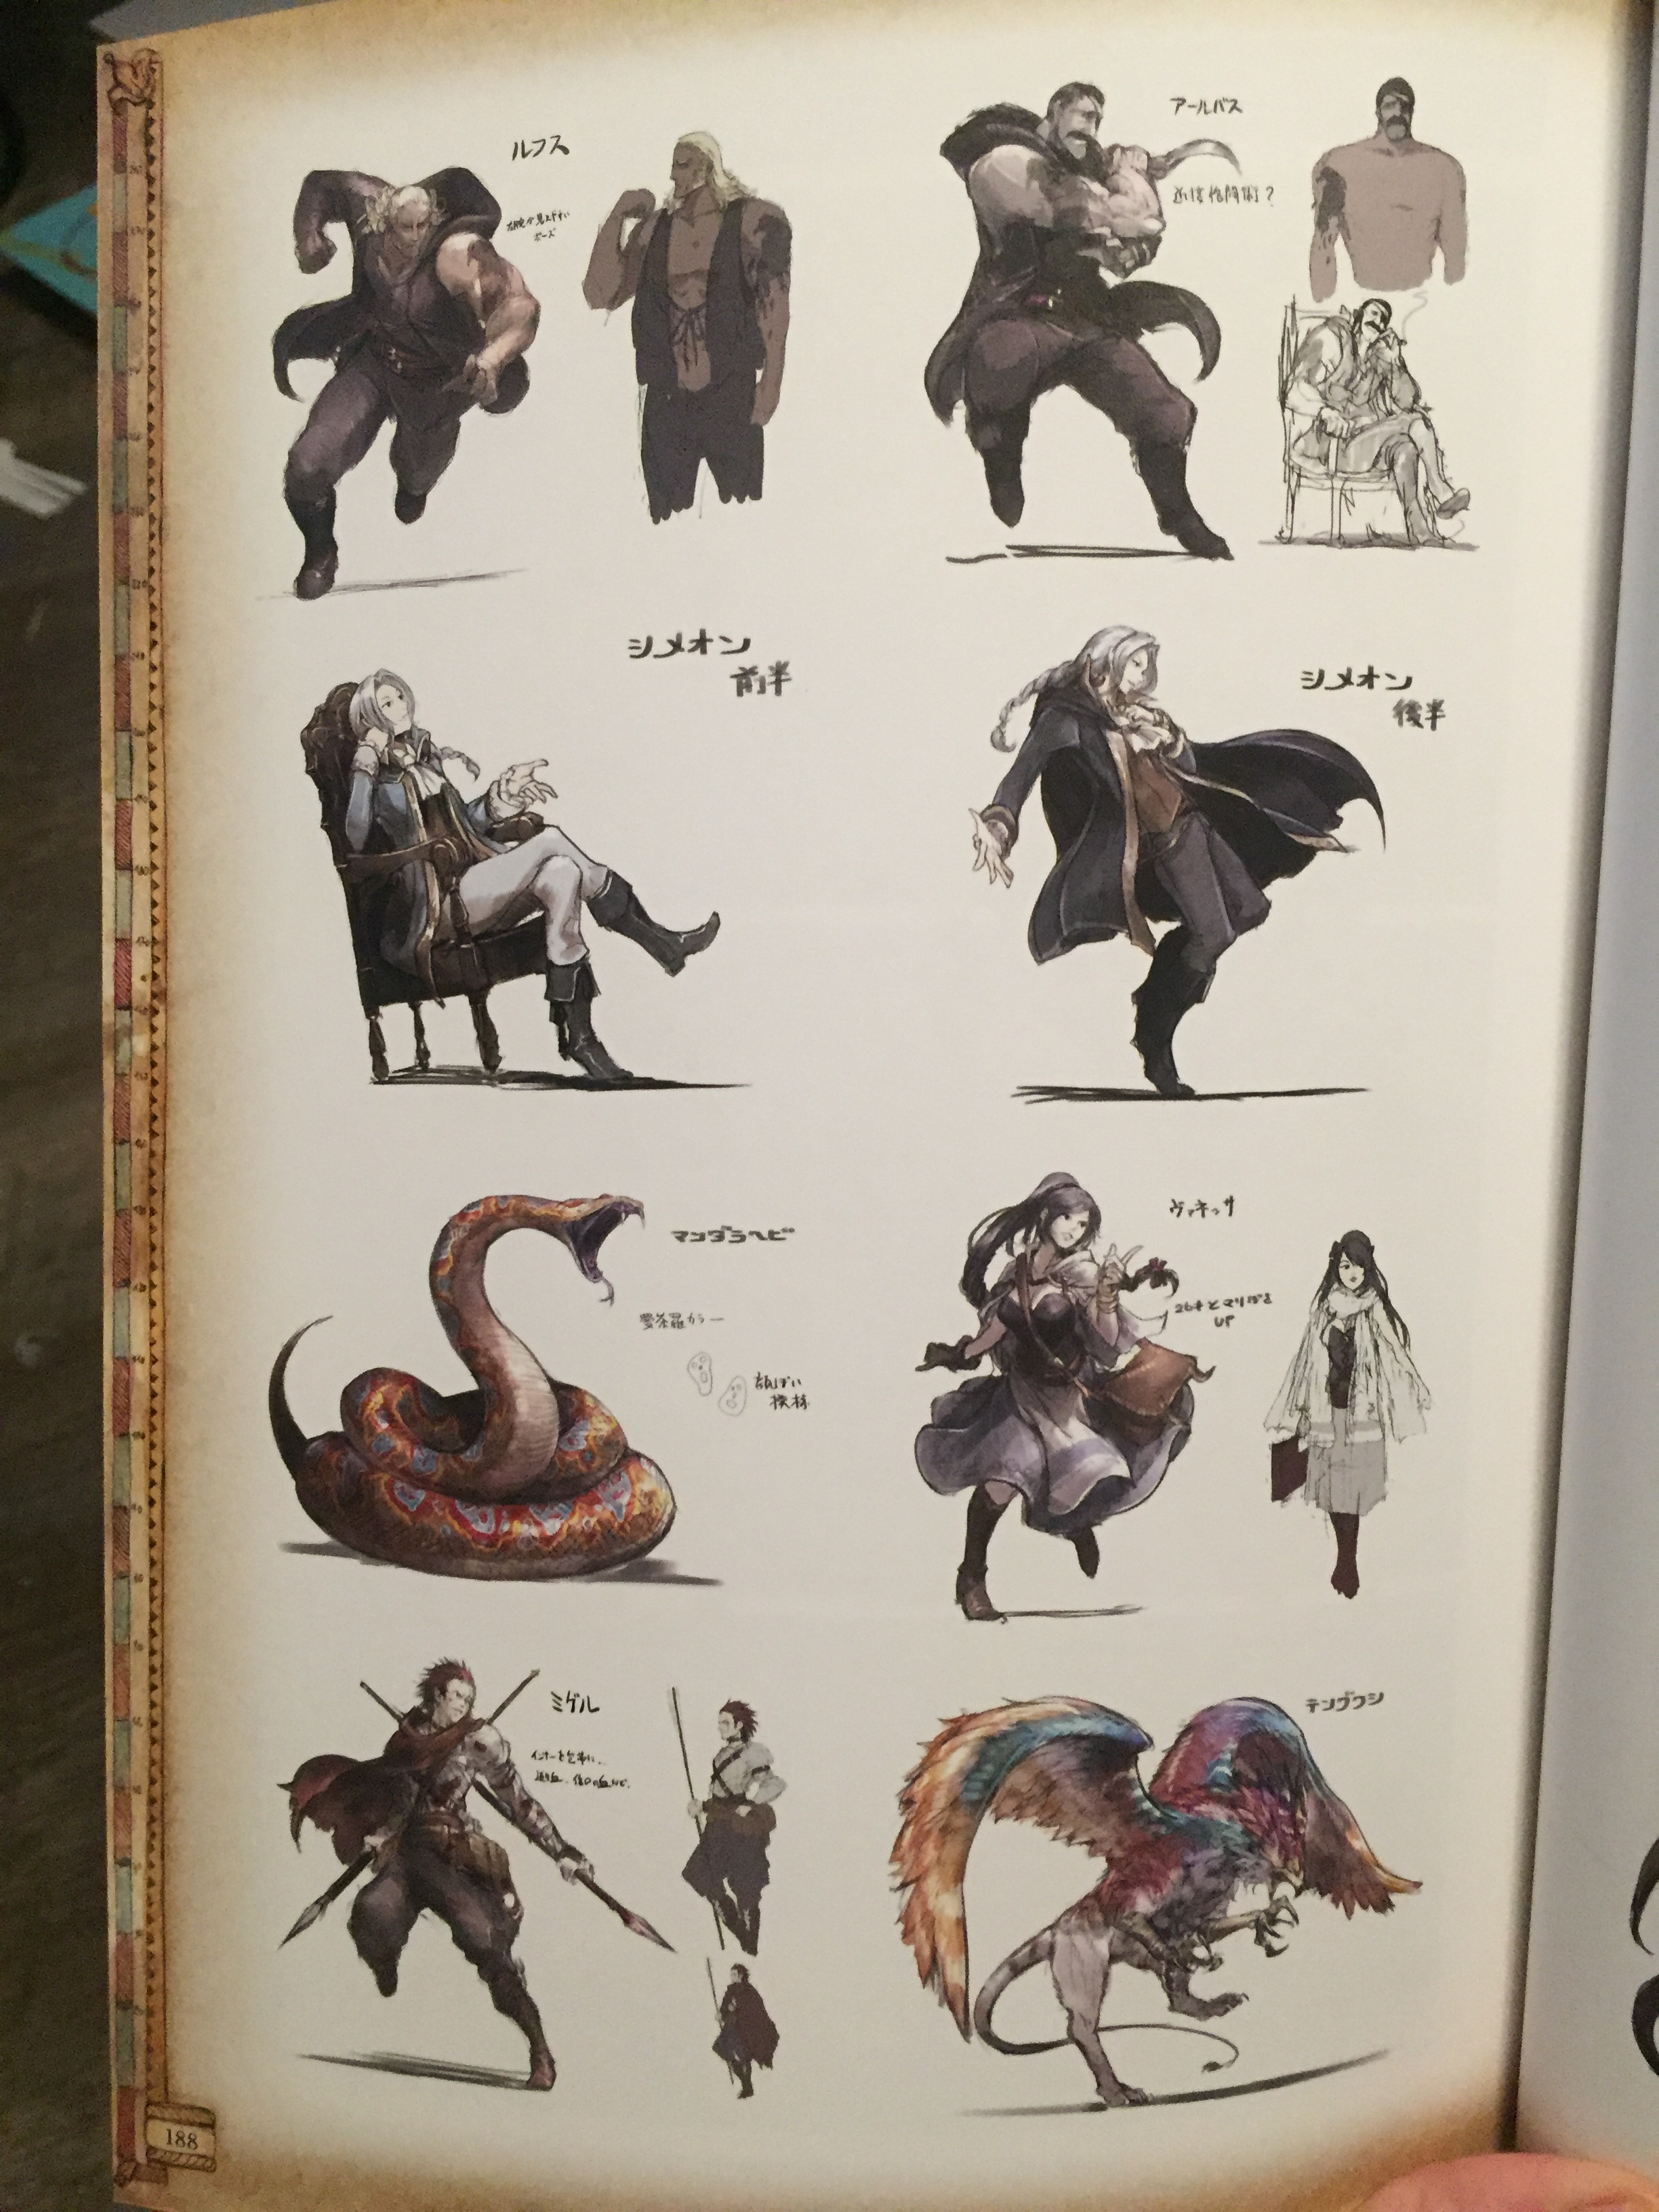 octopath traveler concept art.JPG